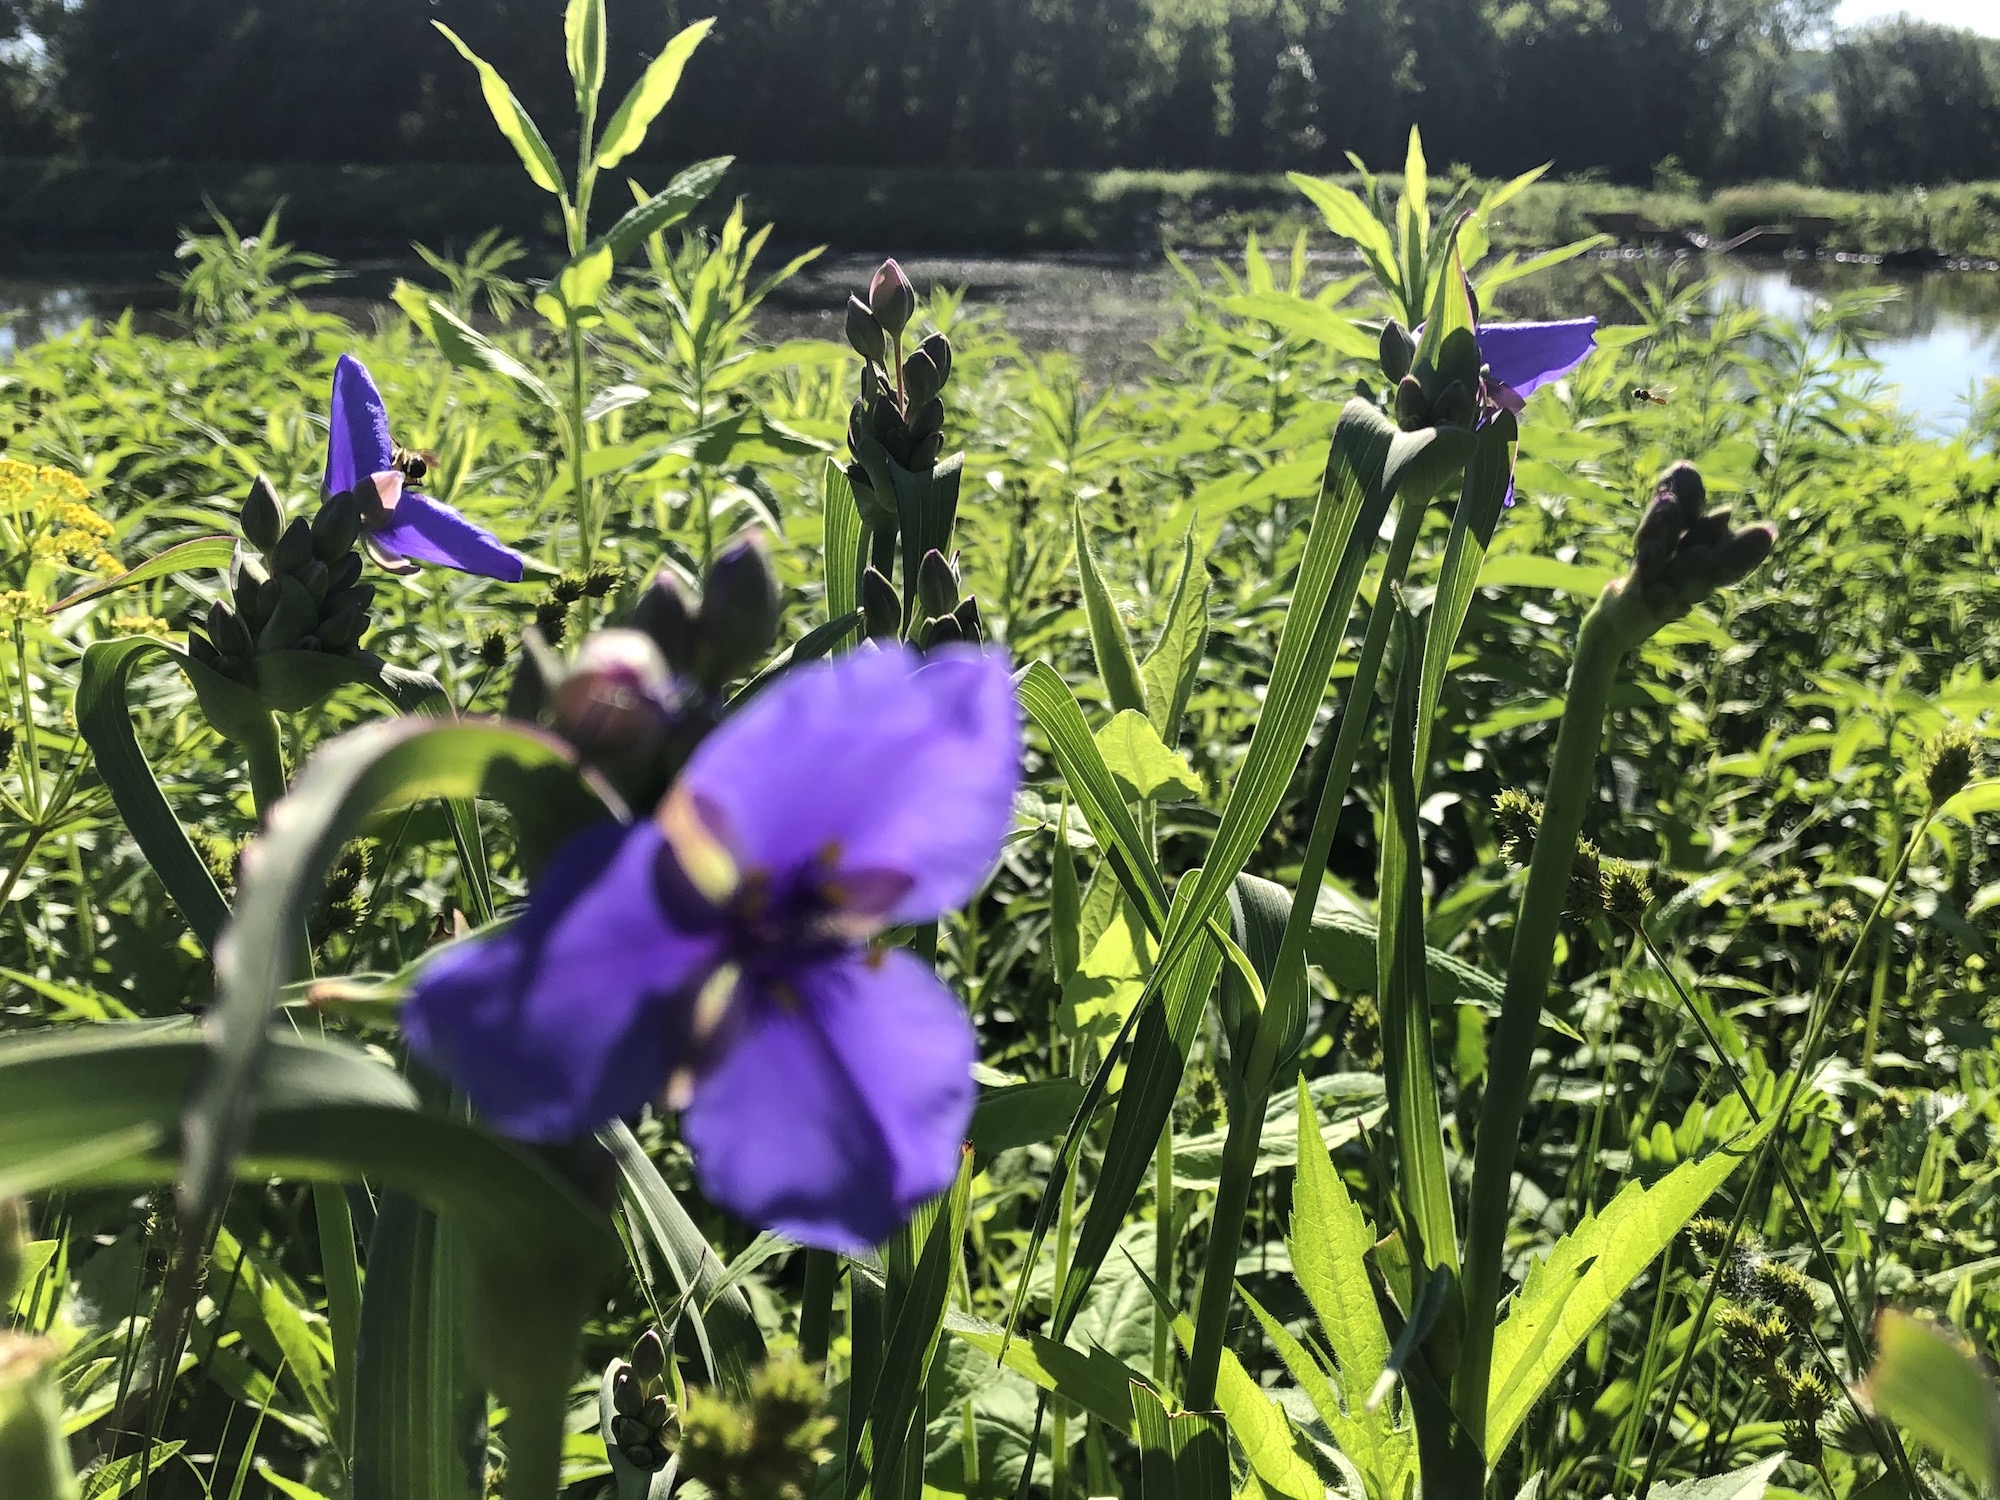 Spiderwort on bank of retaining pond in Madison, Wisconsin on June 8, 2019.